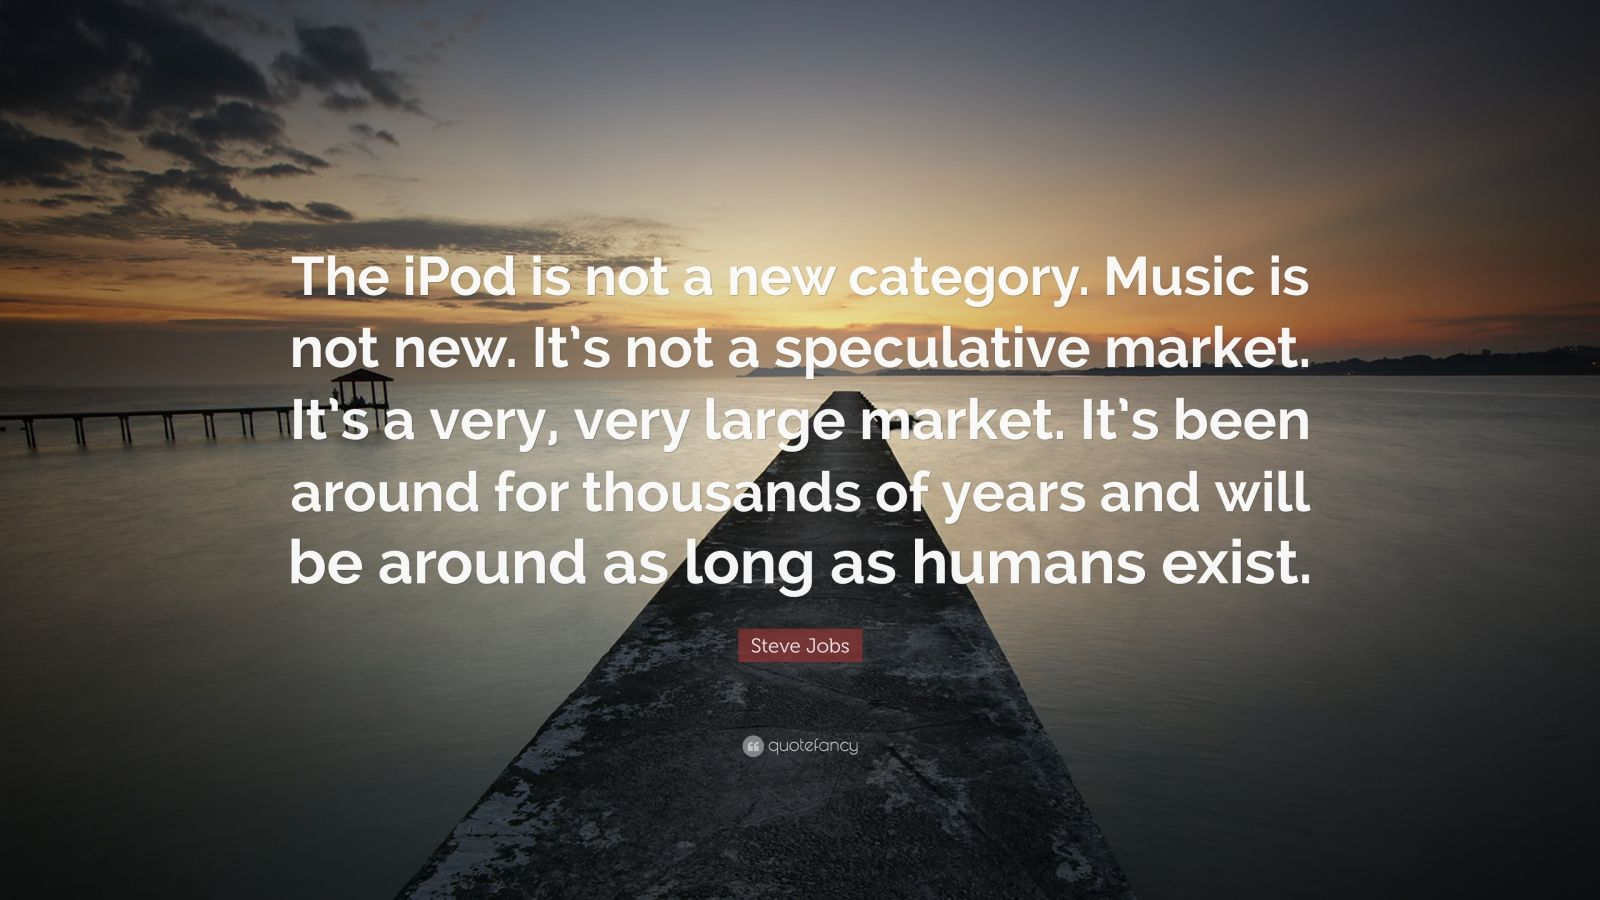 "Steve Jobs Quote: ""The iPod is not a new category. Music is not new. It's not a speculative market. It's a very, very large market. It's been around for thousands of years and will be around as long as humans exist."""